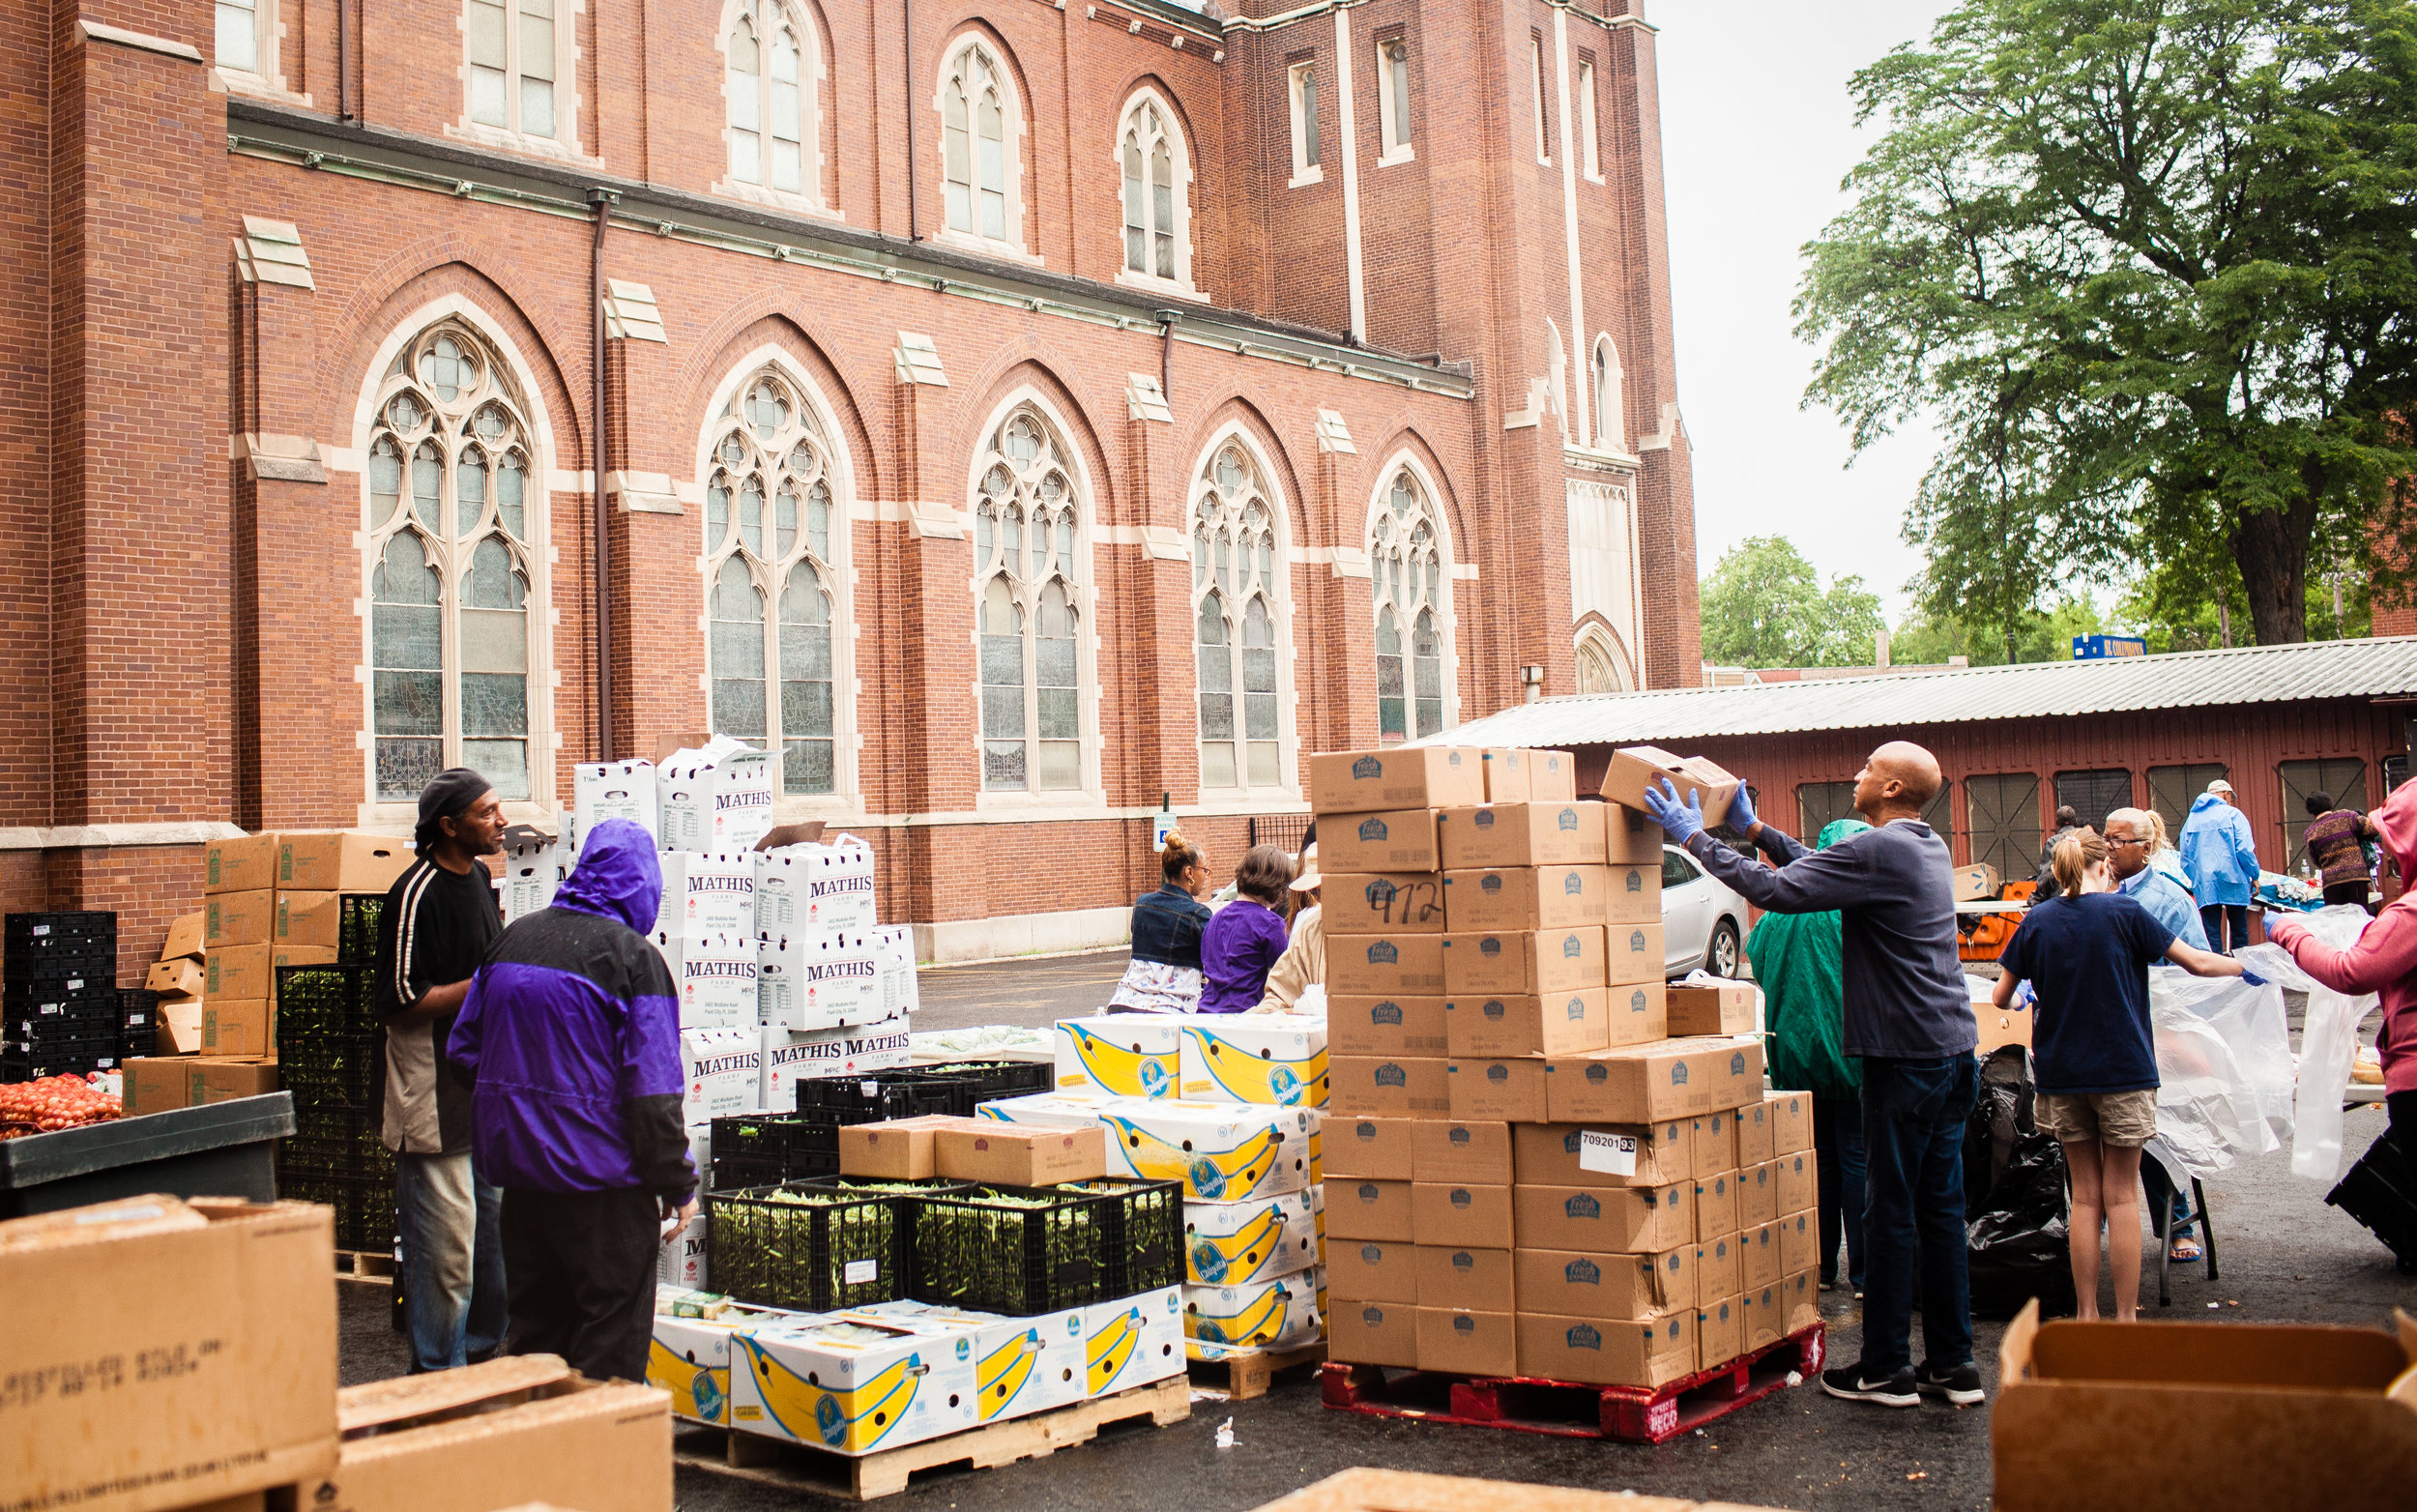 062817_St_Columbanus_Food_Pantry_0342.jpg